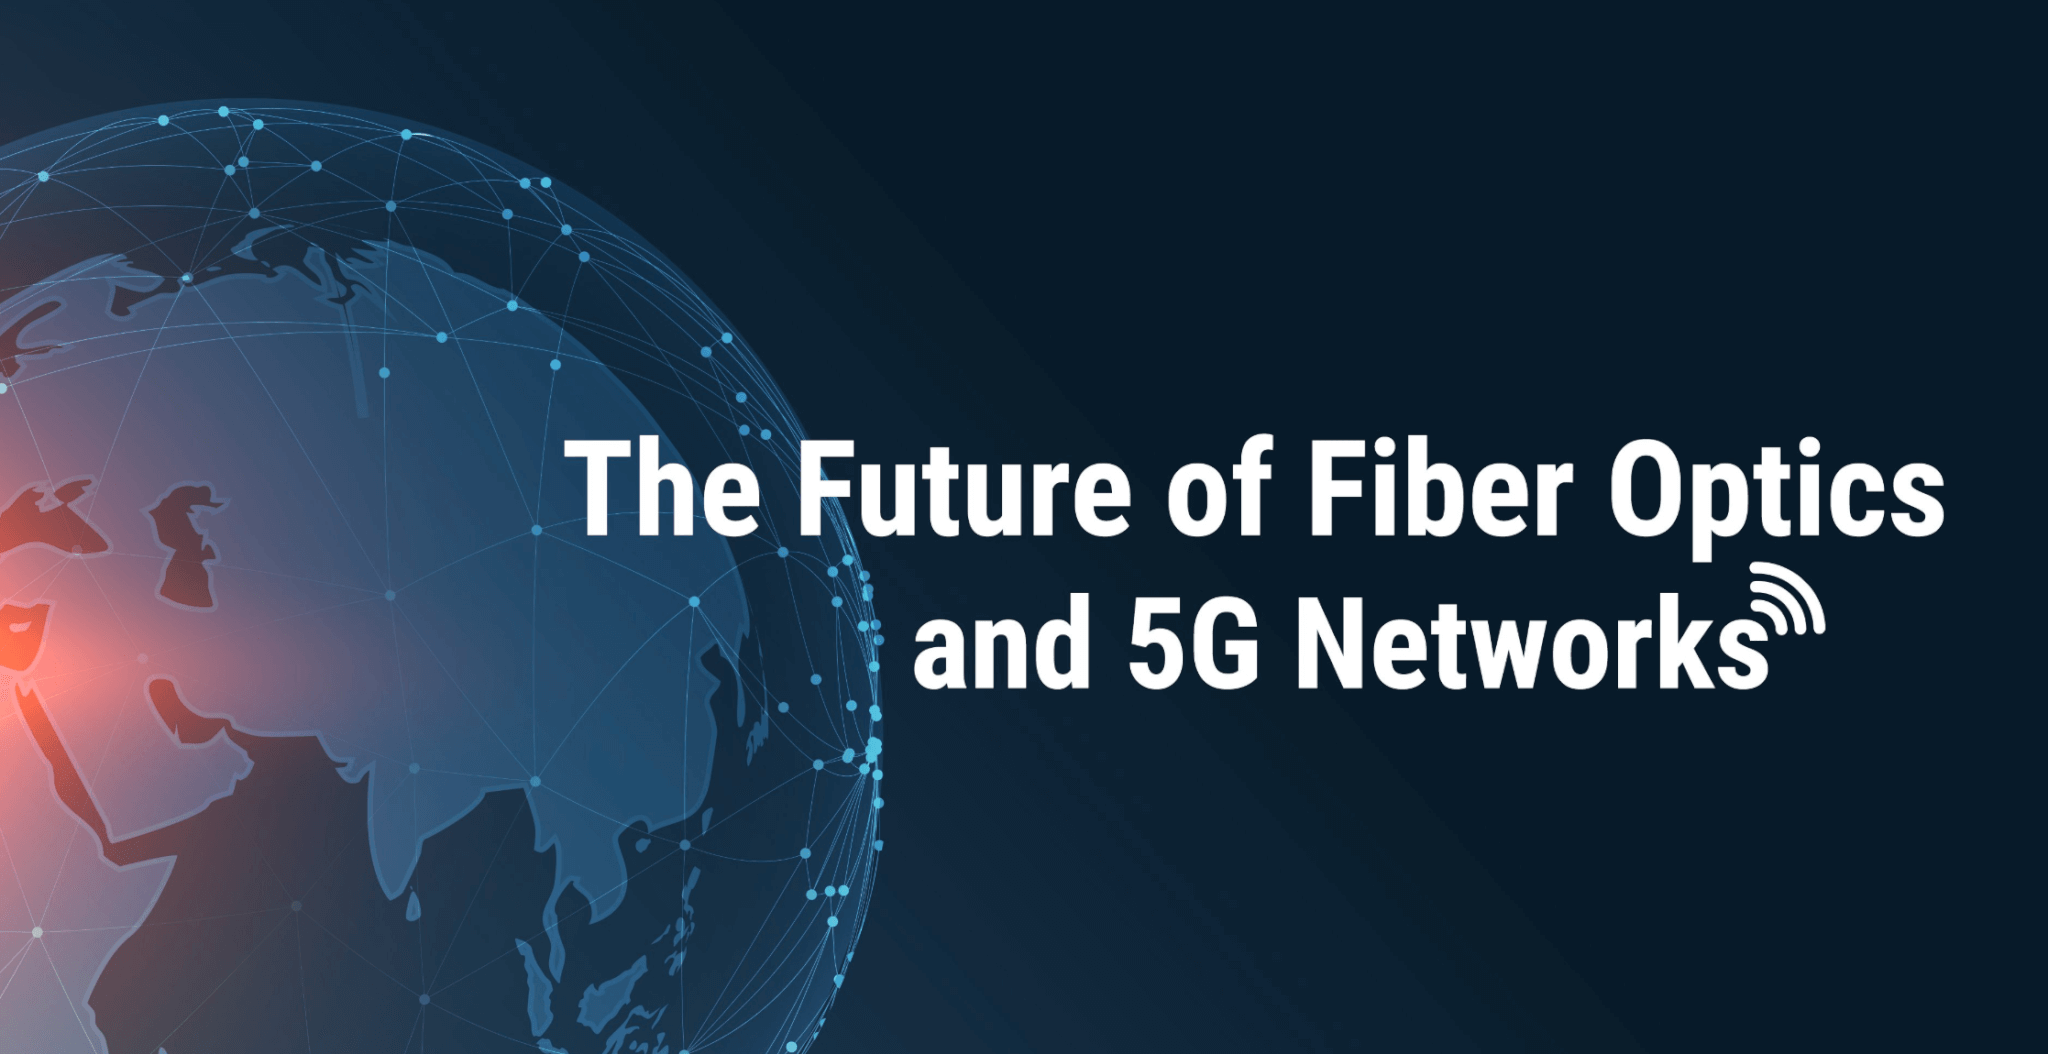 A BORDERLESS WORLD: THE FUTURE OF FIBER OPTICS AND 5G - Juicedsystems - lexie smith, geolinks